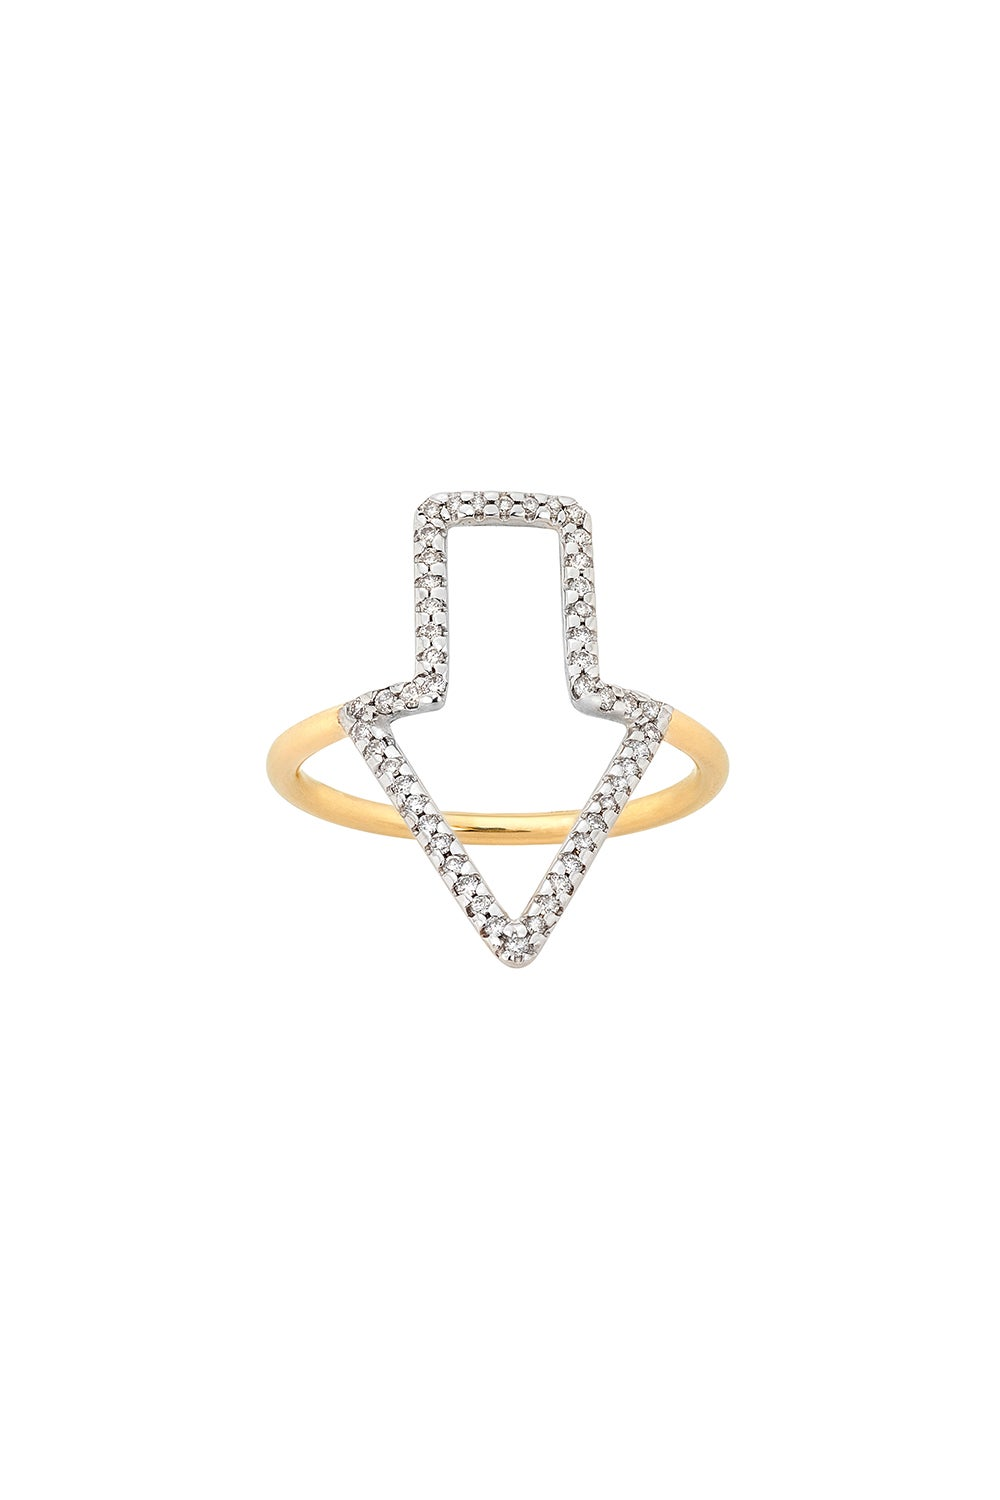 Diamond Runaway Arrow Ring, 9ct Gold, .28ct Diamond